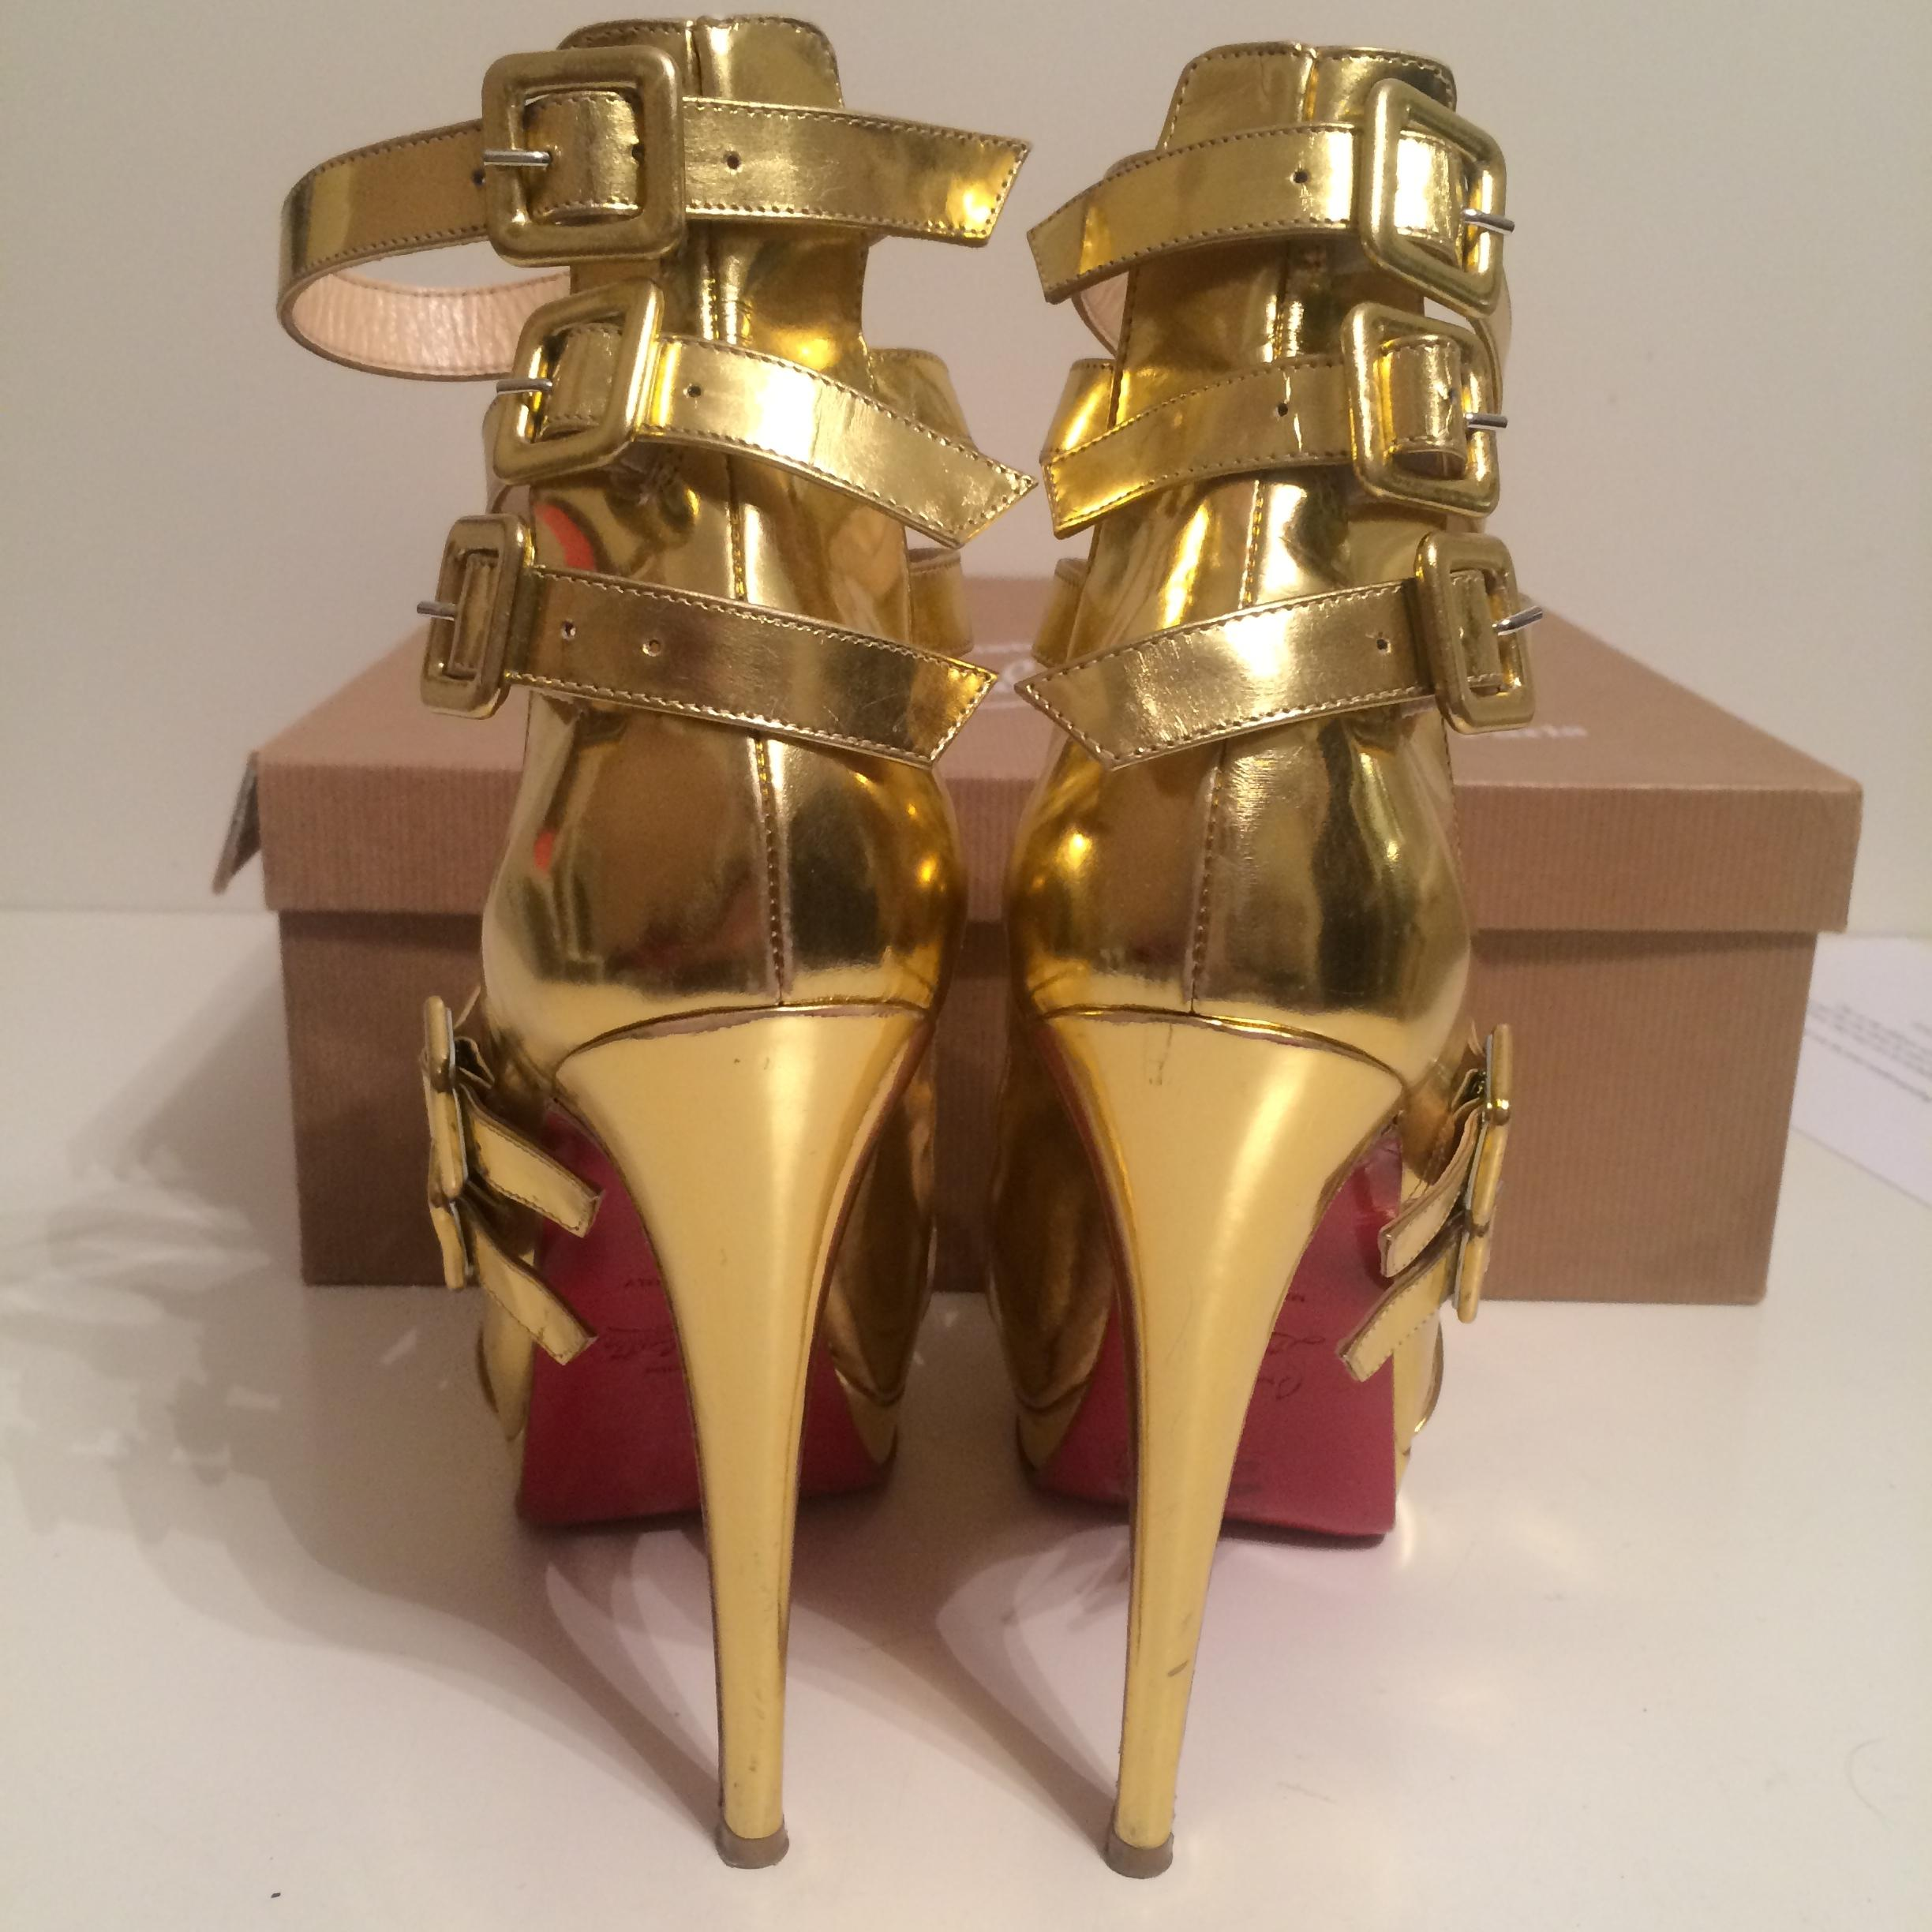 cba431cbe84b ... Christian Louboutin Louboutin Louboutin Gold Differa Patent Leather Eu  38 - 8 Pumps Size US 7.5 ...